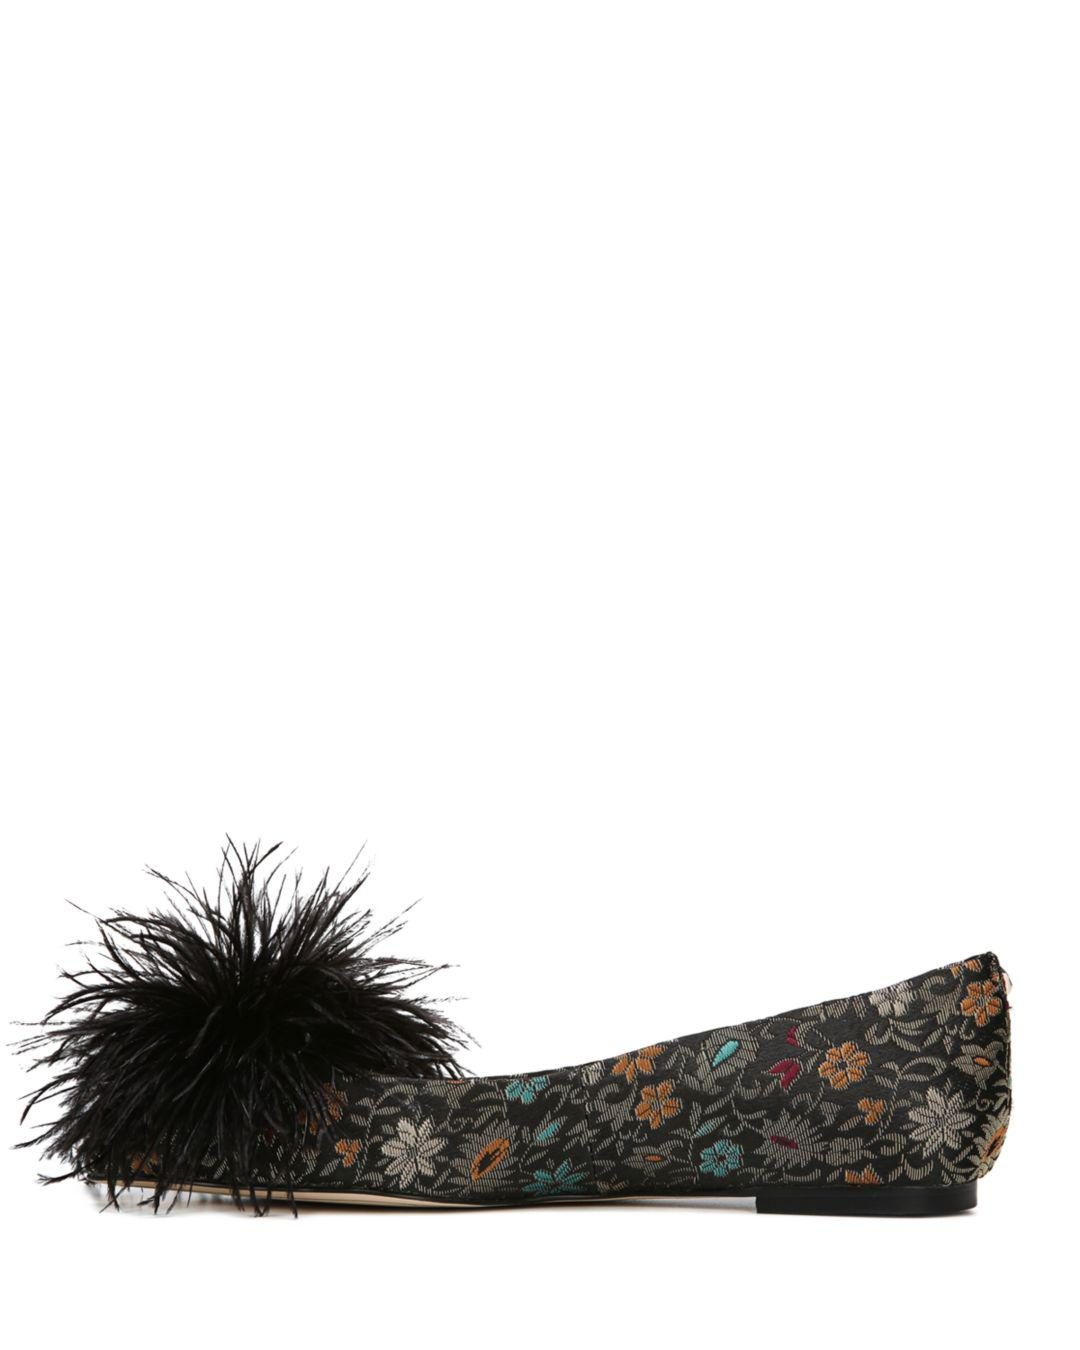 290610d95 Lyst - Sam Edelman Women s Reina Jacquard   Feather Pom-pom Flats in ...